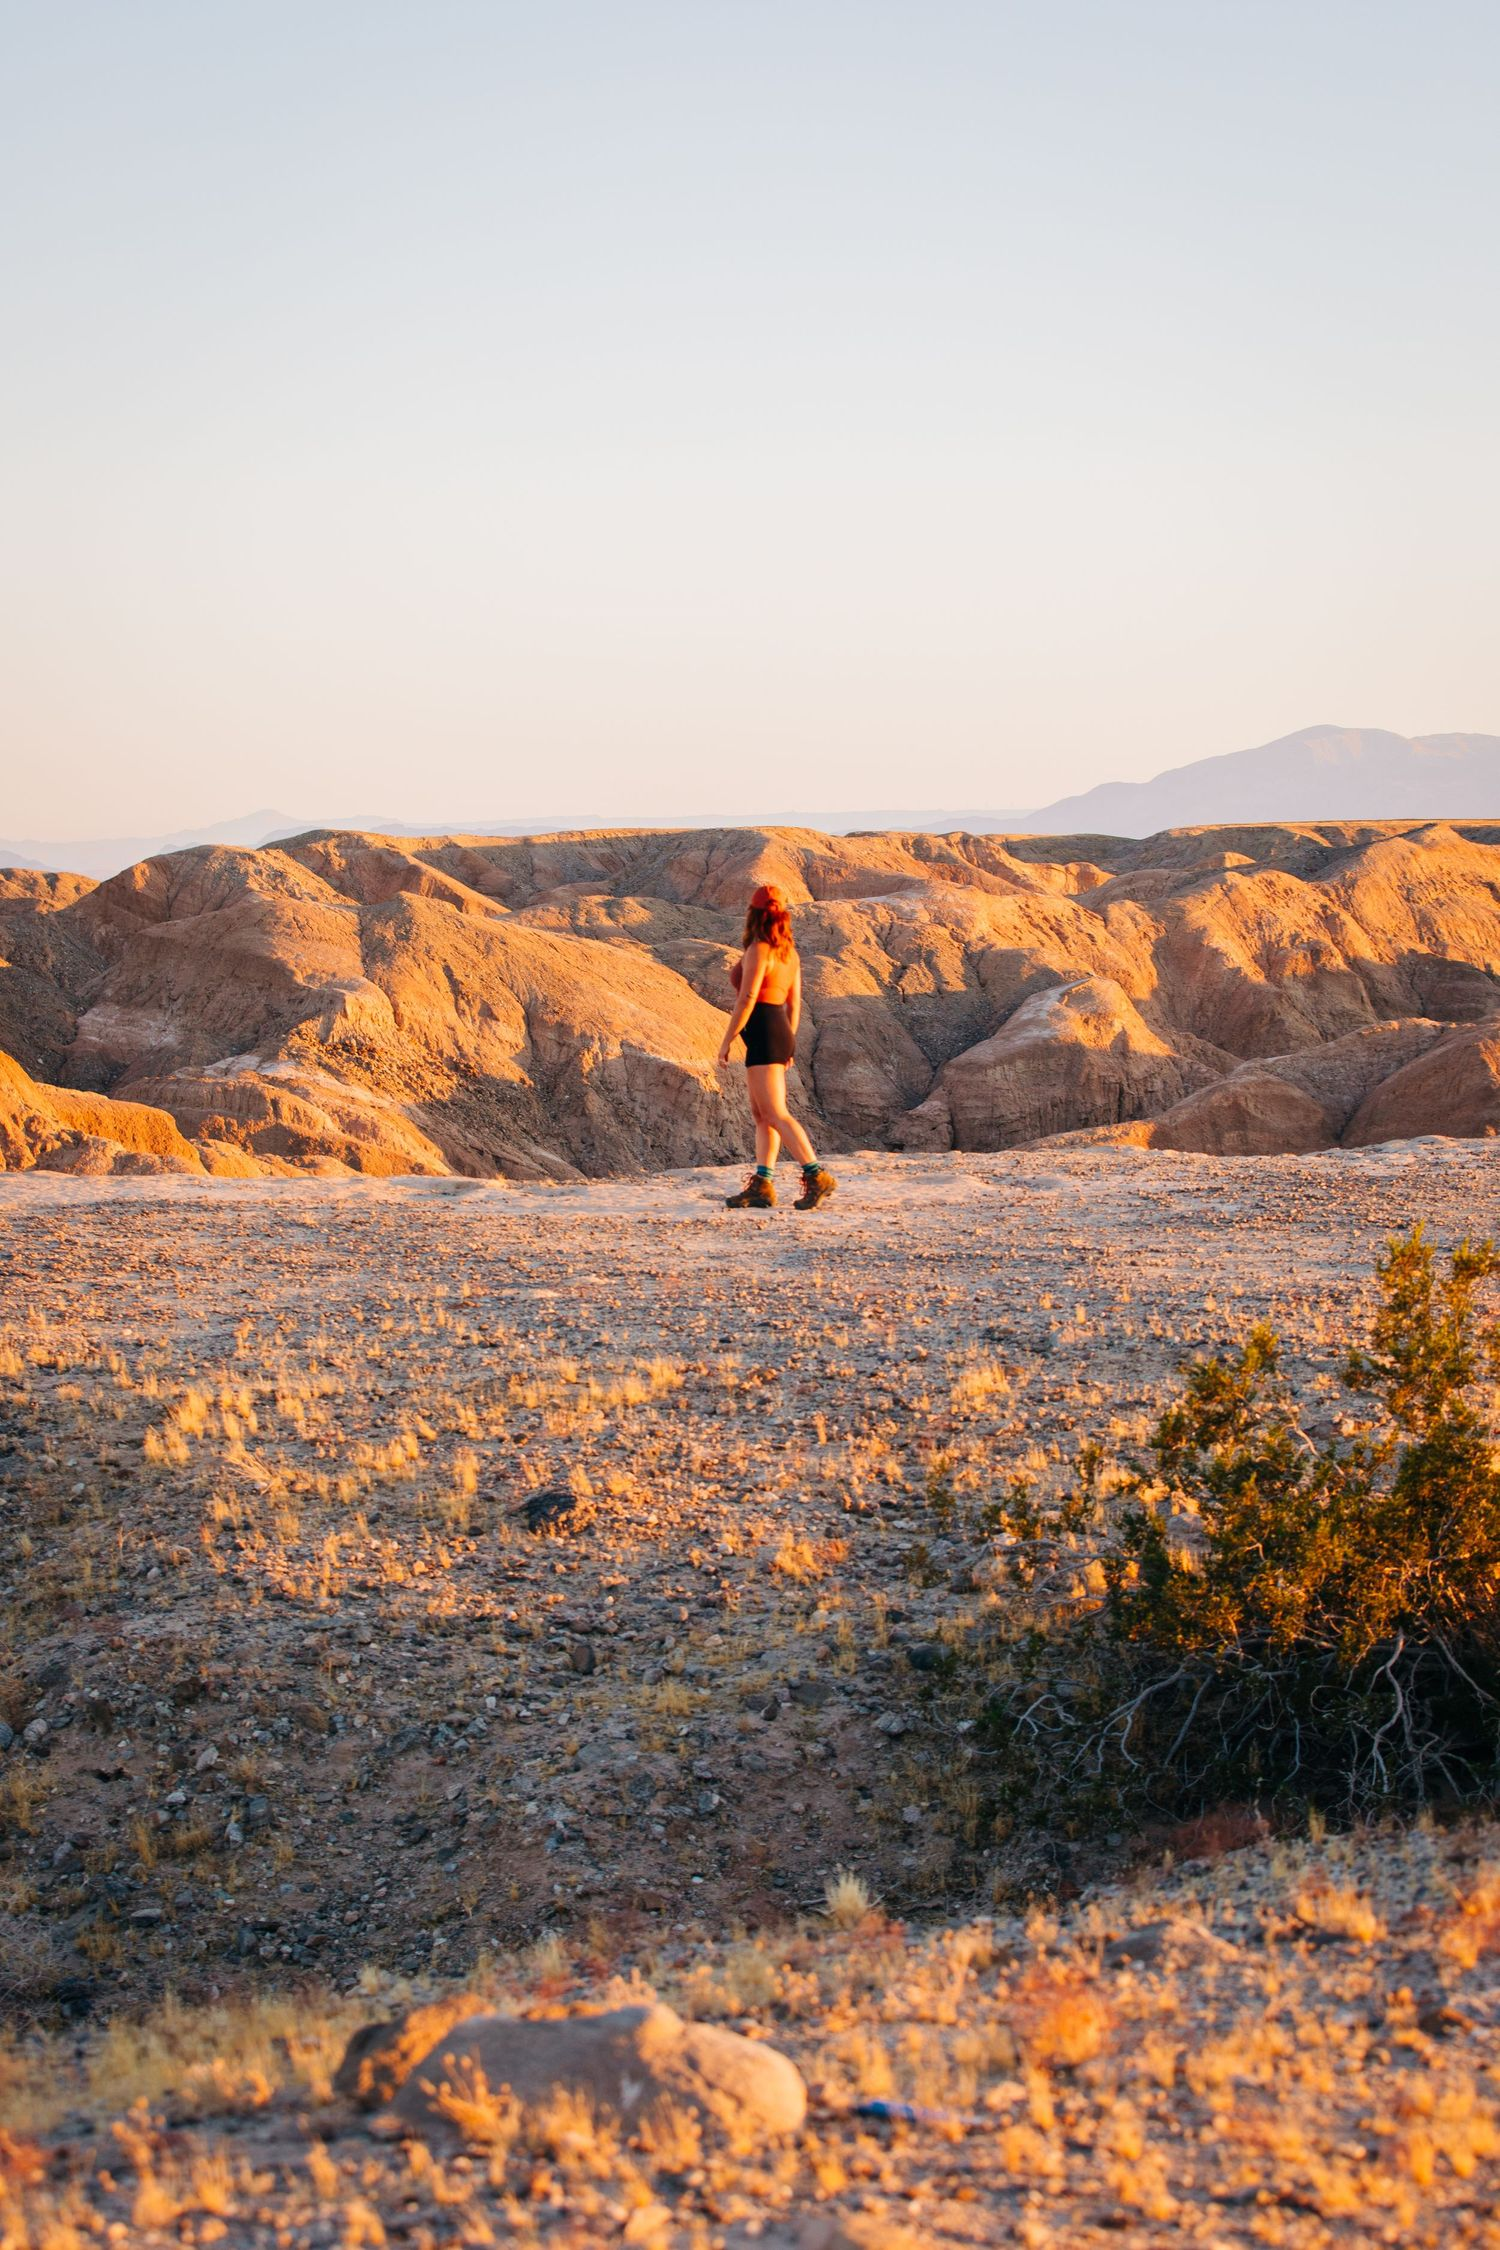 A woman stands at a cliff edge in in the deserts of Southern California.